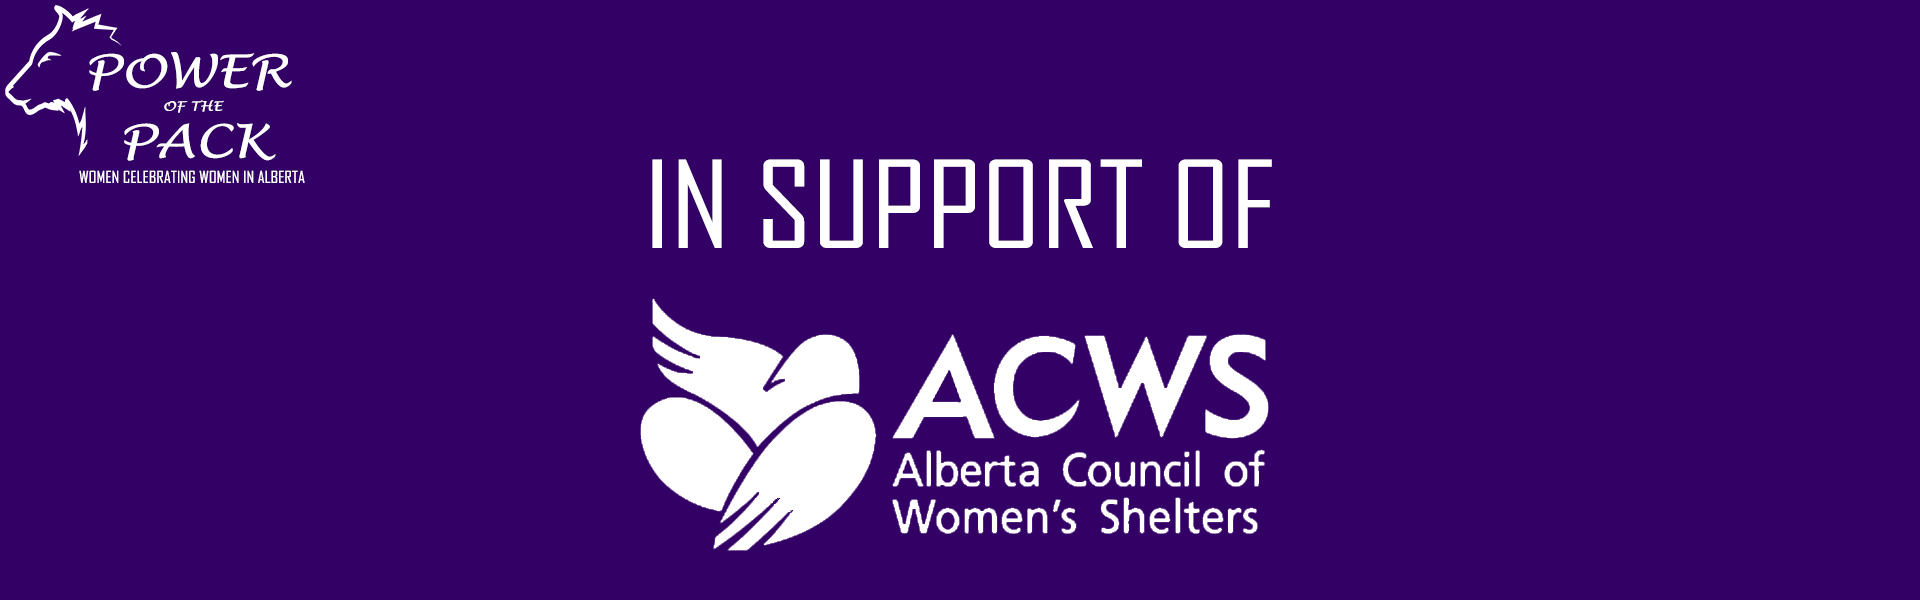 In support of the Alberta Council of Women's Shelters (ACWS)